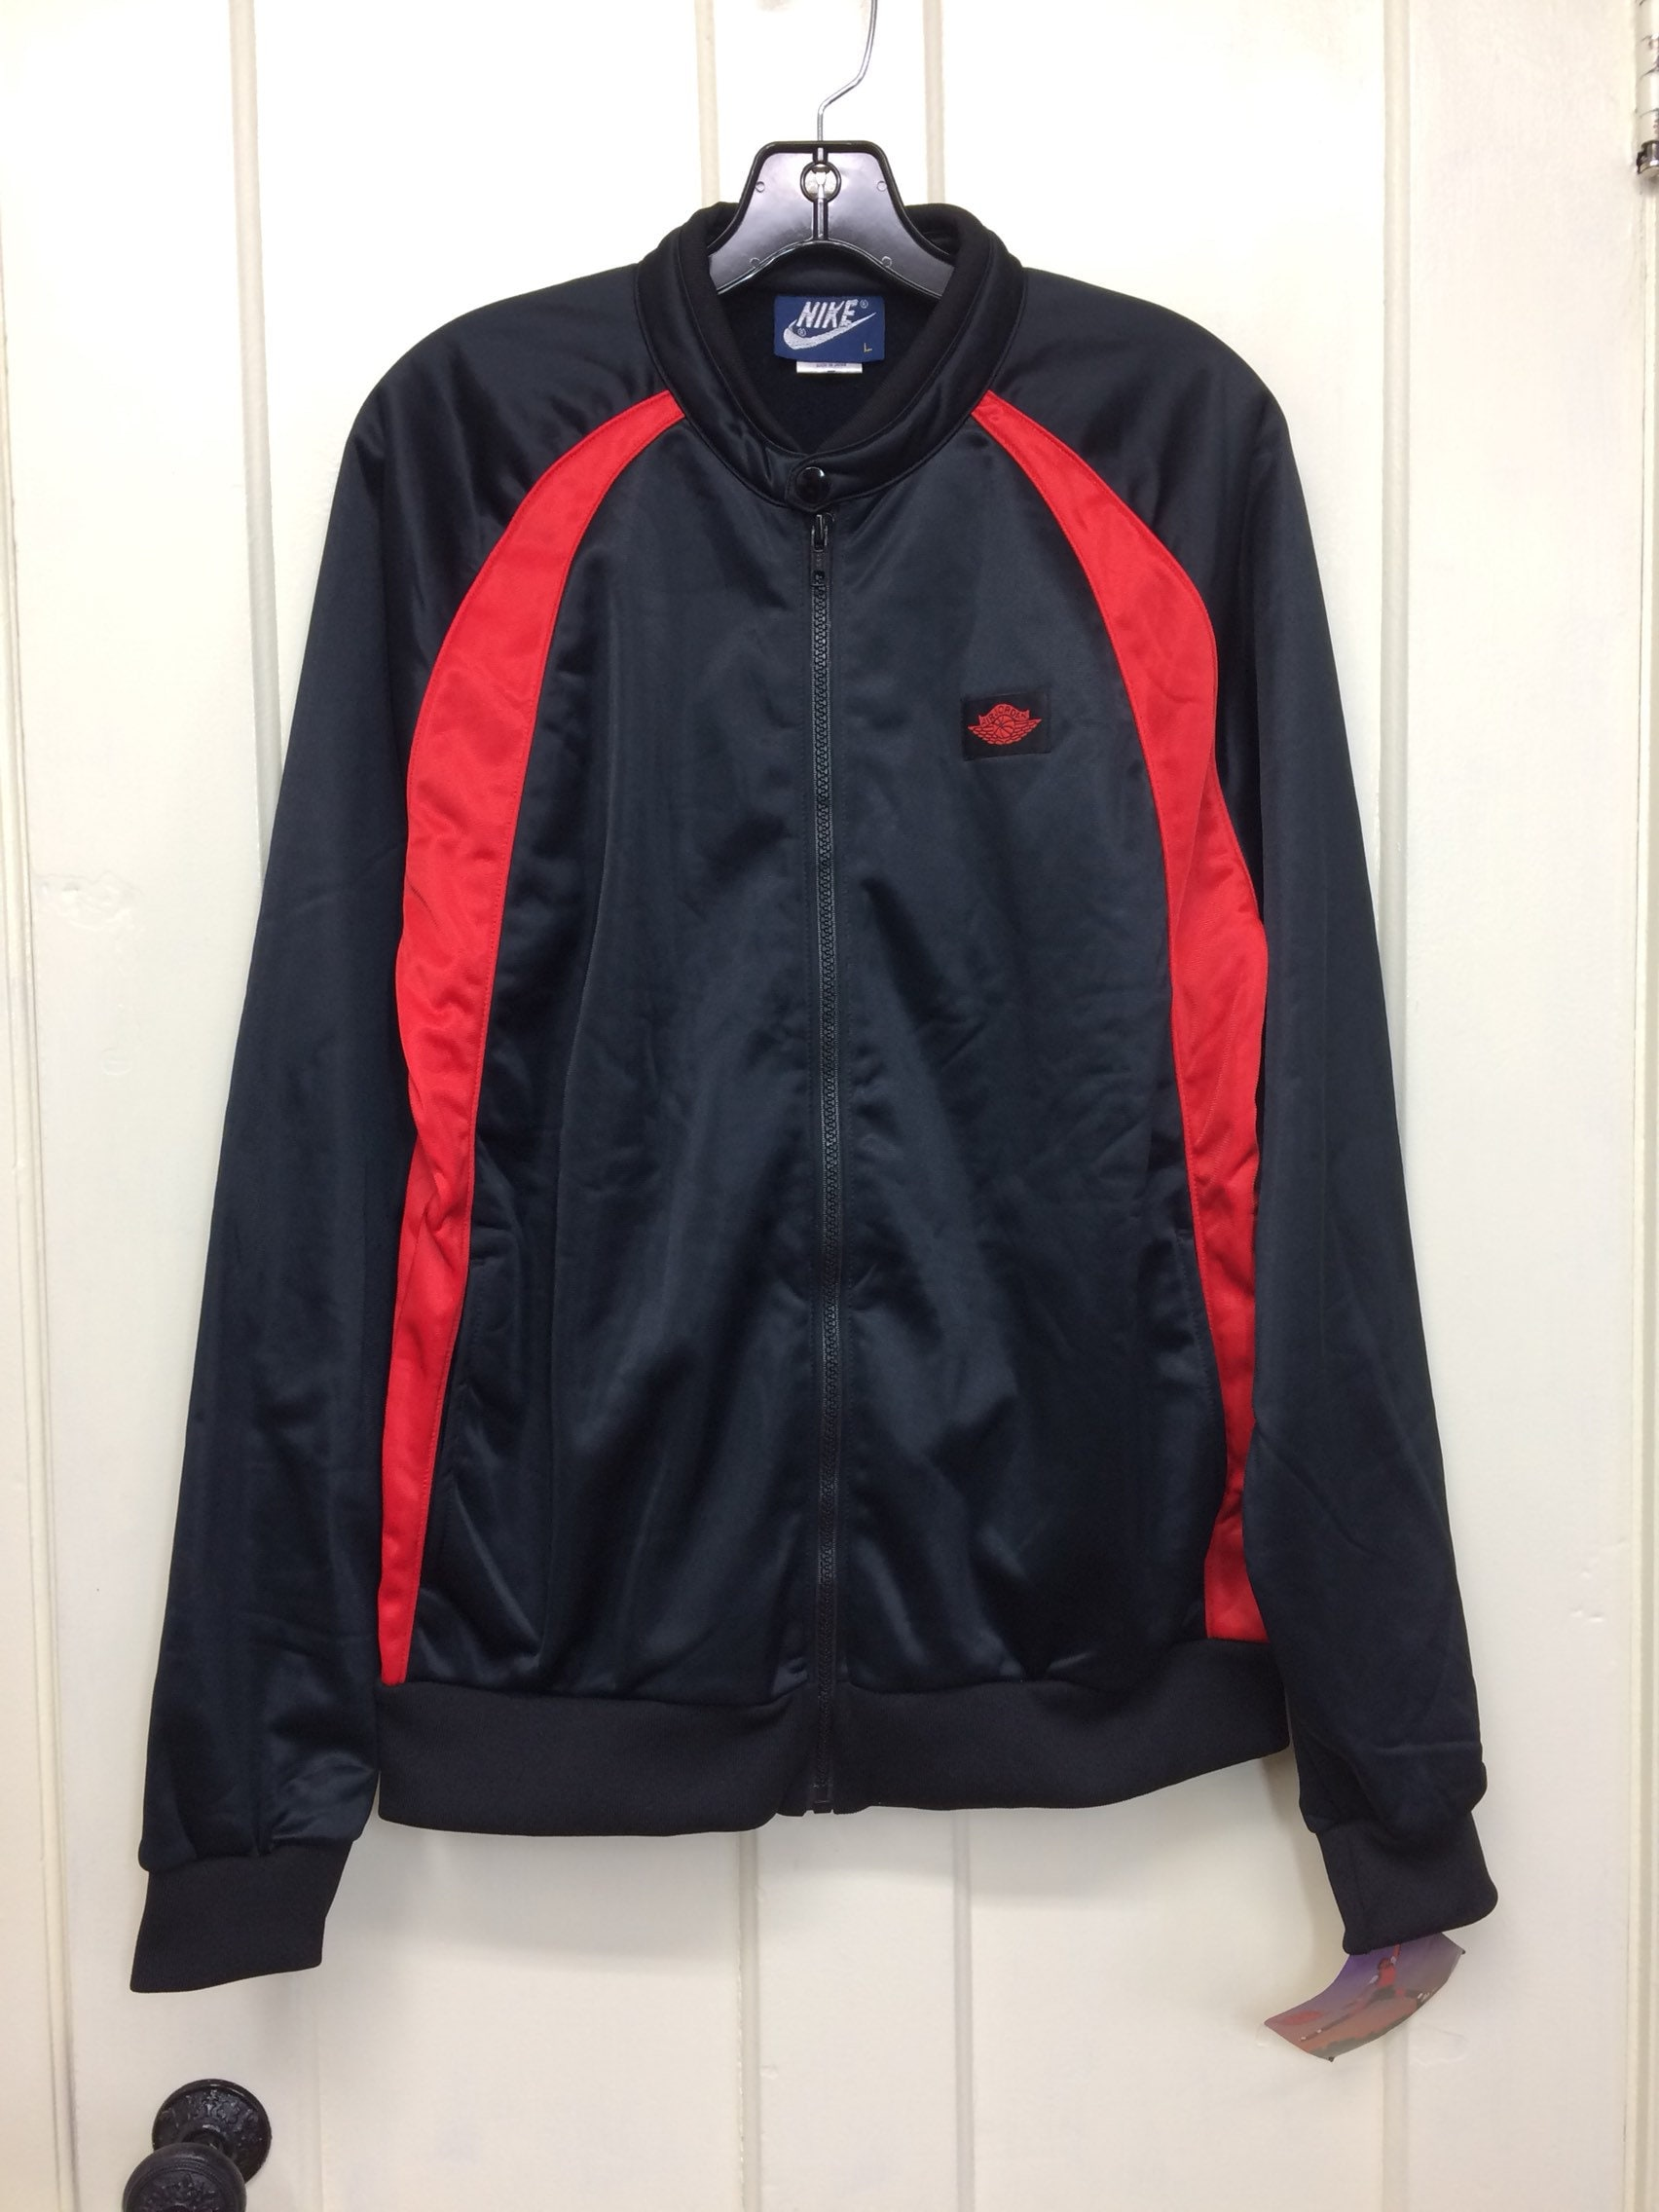 9d187d0b7fd827 deadstock 1980s 1985 Air Jordan 1 wings basketball warm up jogging jacket  size large made in Japan black red AJ-1 blue tag Nike NOS NWT